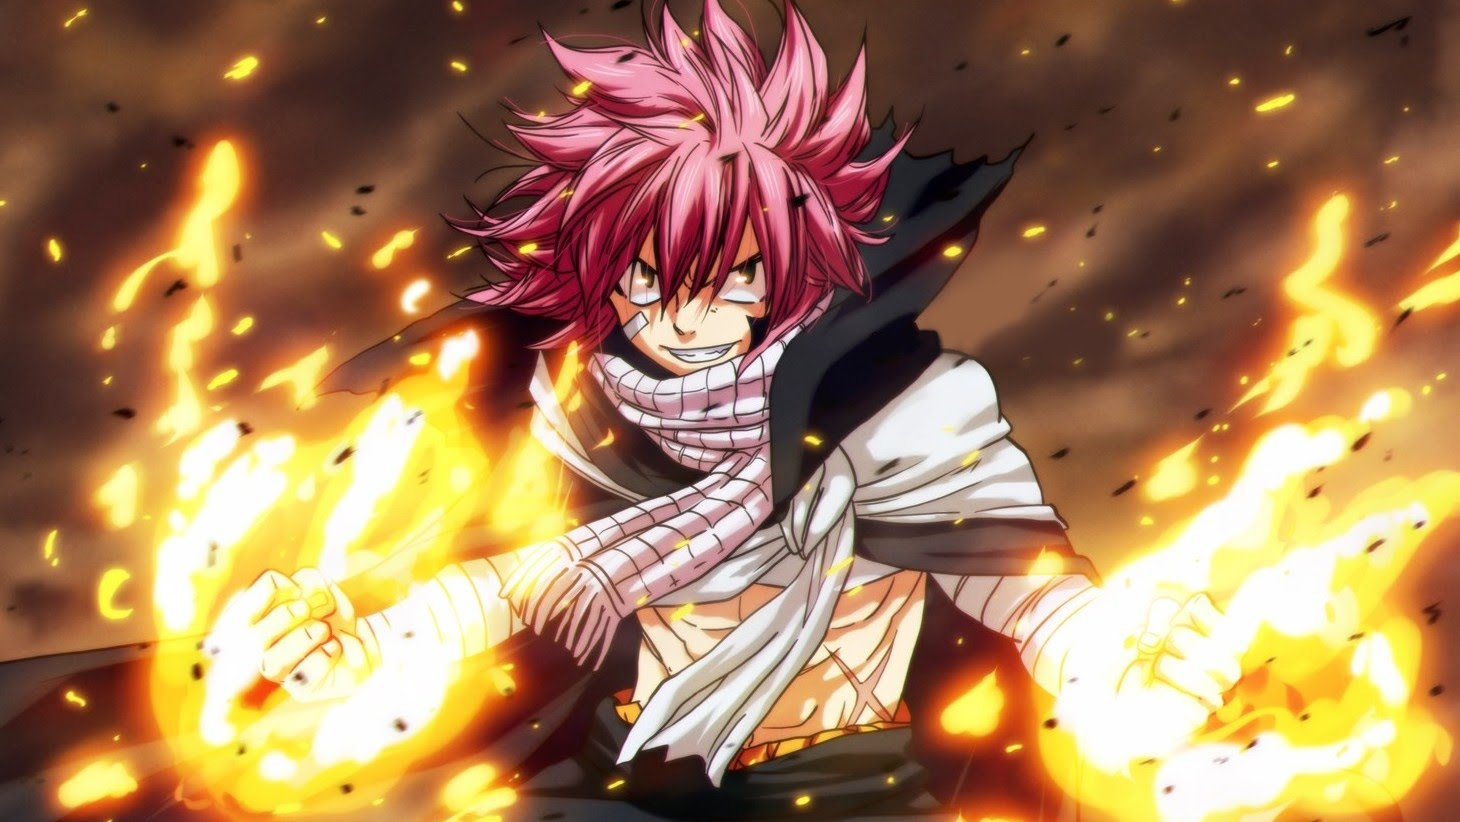 Fairy tail vector transparent download Fairy Tail「AMV」This Irresistible [HD] - YouTube vector transparent download